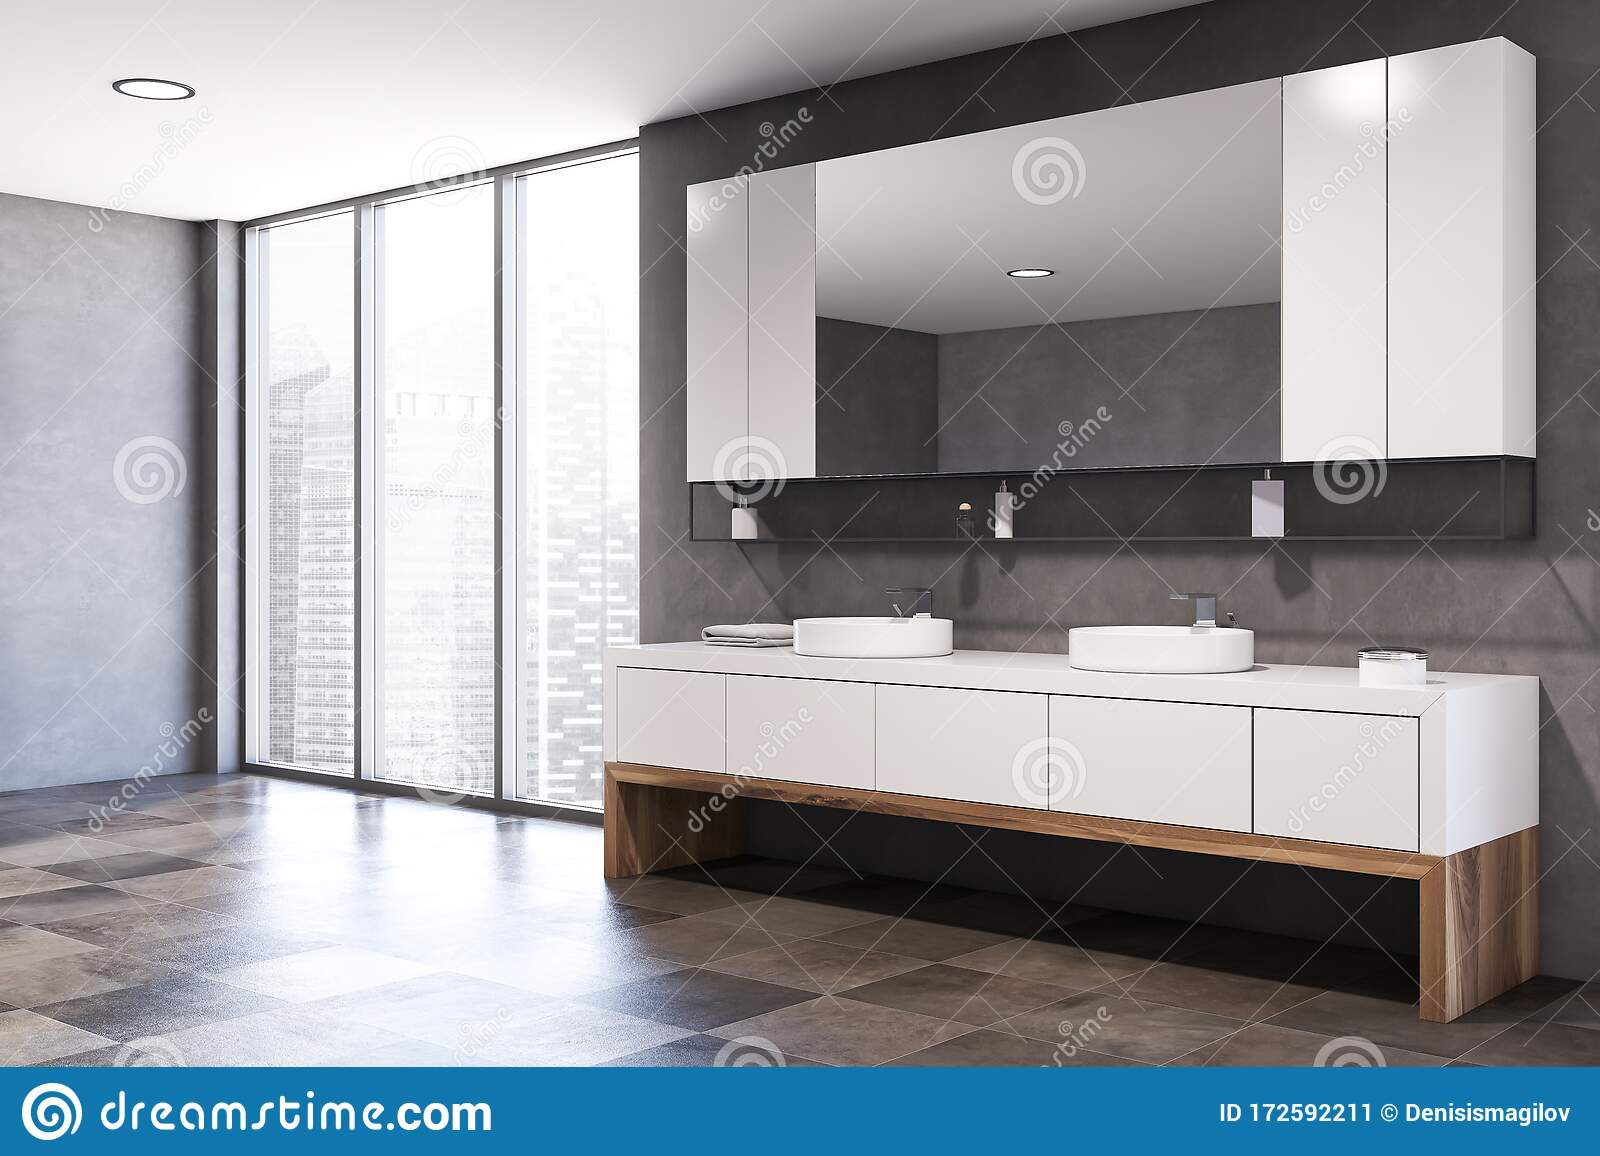 Gray And Wooden Bathroom Corner With Double Sink Stock Illustration Illustration Of Home Design 172592211